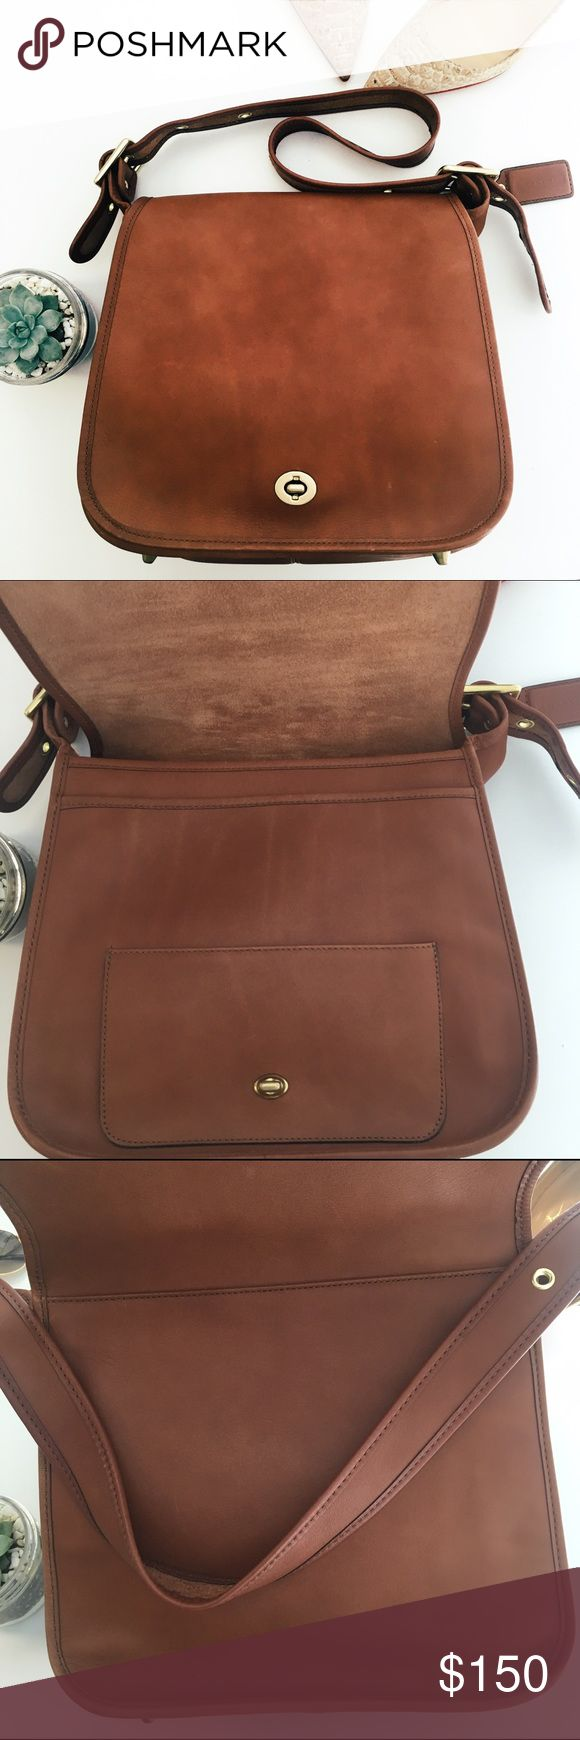 Genuine leather Coach messenger bag Pre-loved Coach messenger bag! Subtle signs of wear on the leather but no obvious damage. Very functional, the leather is so soft you're bound to love it! Coach Bags